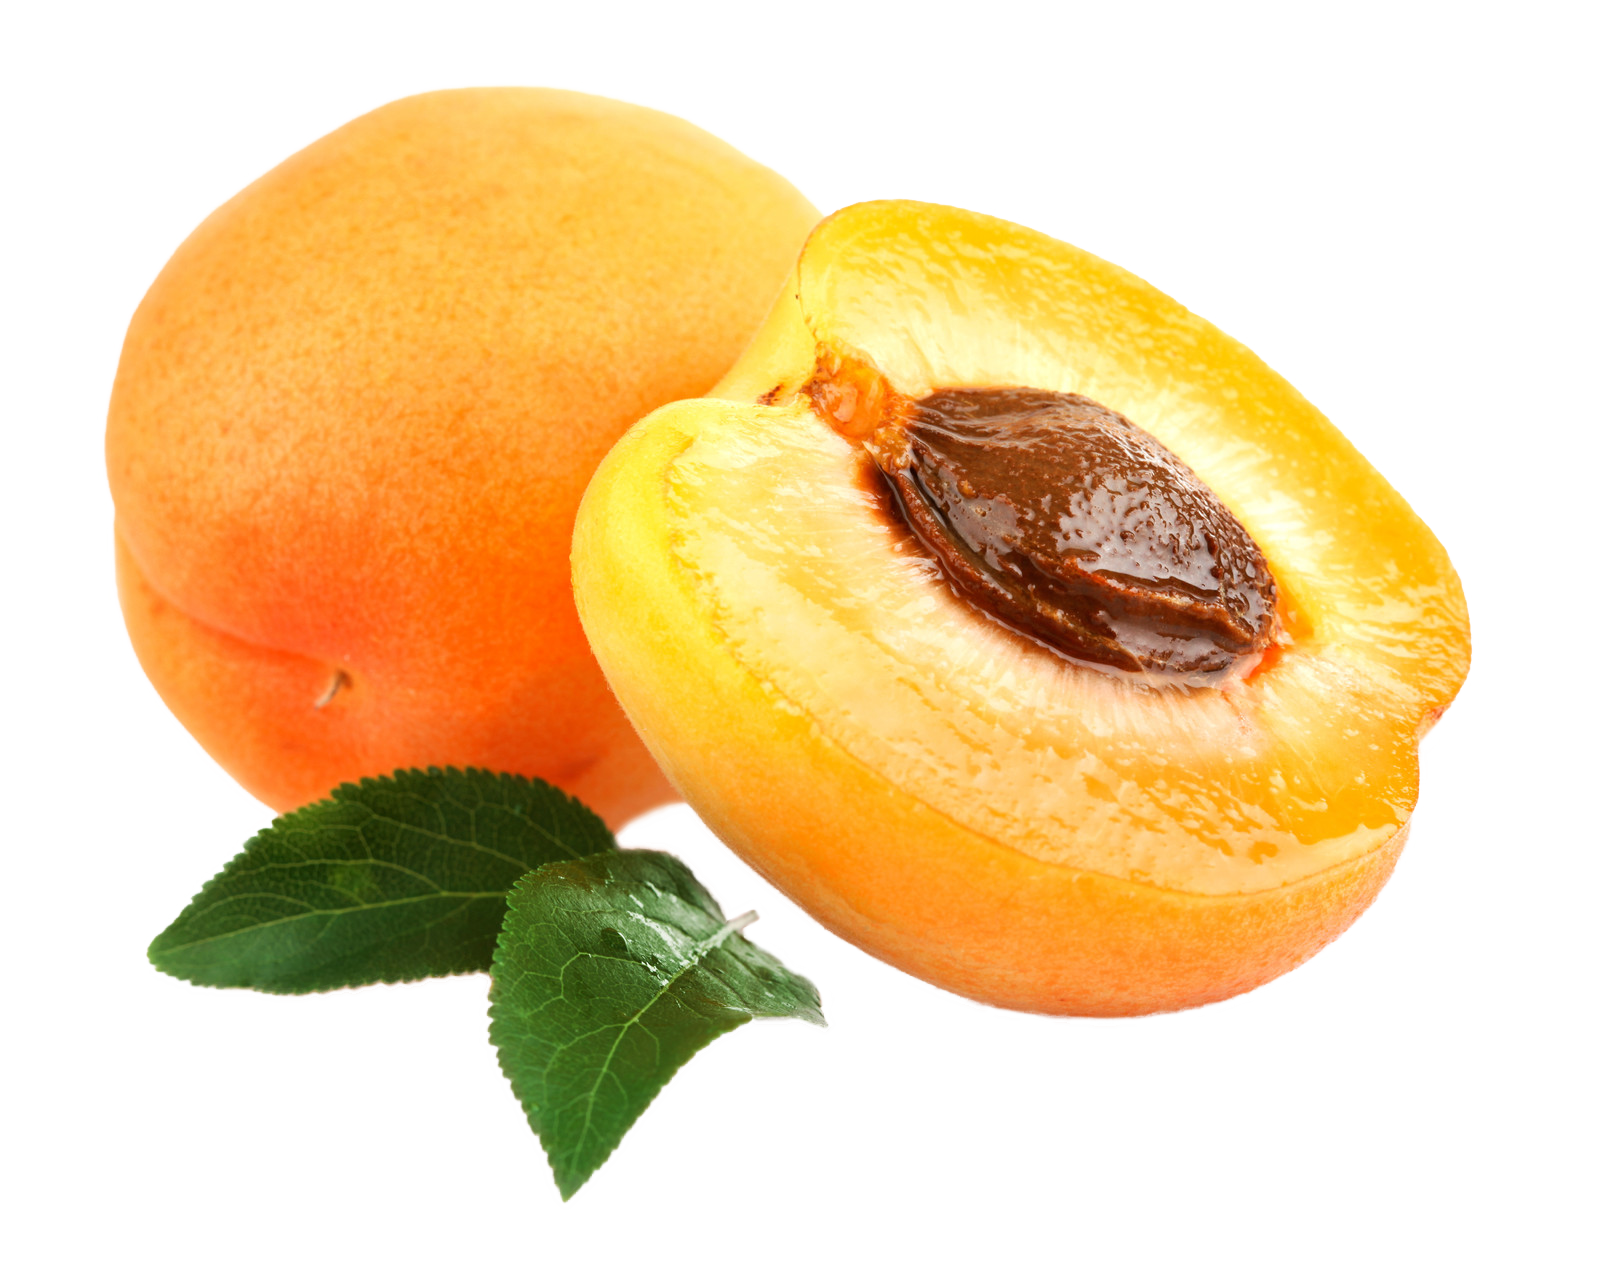 Apricot PNG Image